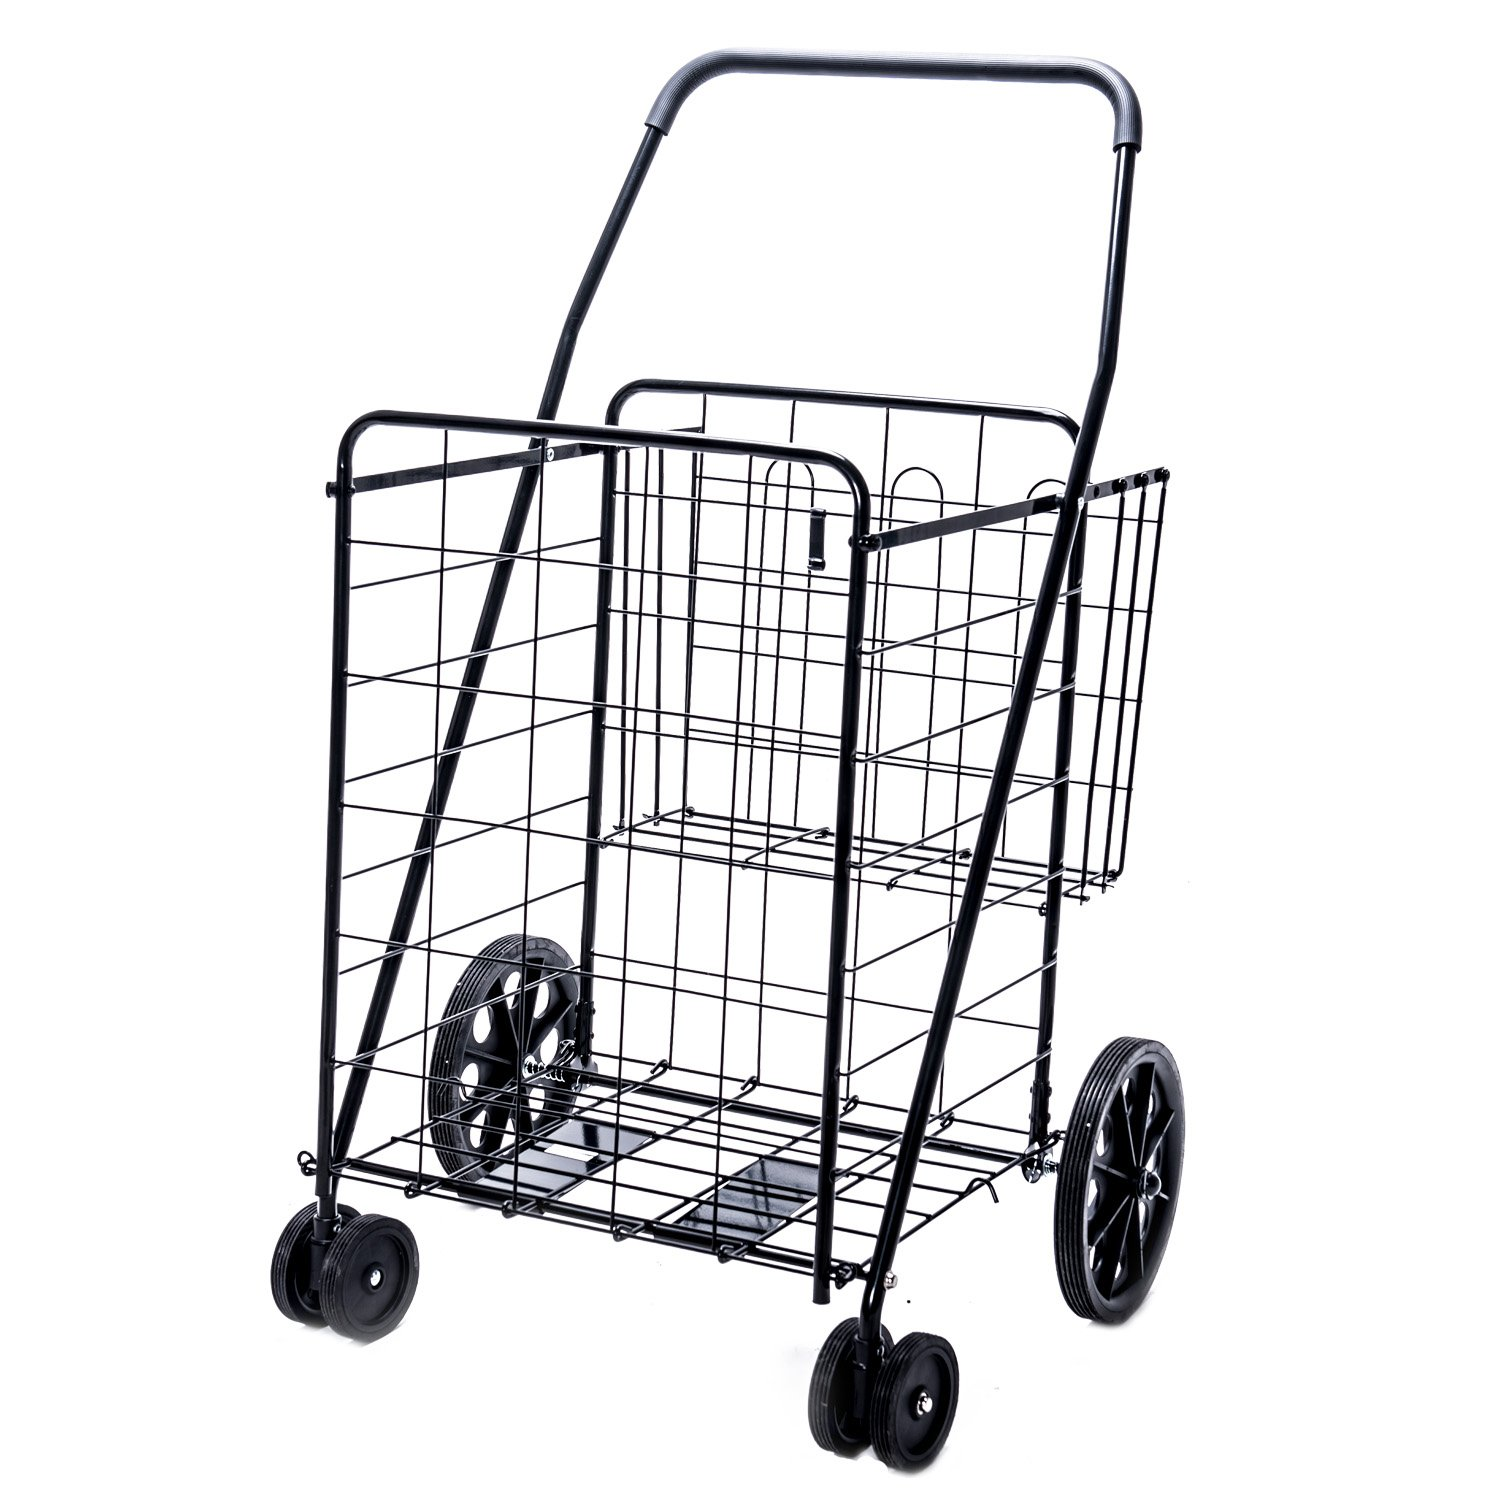 Lifestyle Solutions - Jumbo Deluxe Folding Shopping Cart with Dual Swivel Wheels and Double Basket- 200 lb capacity! by LS